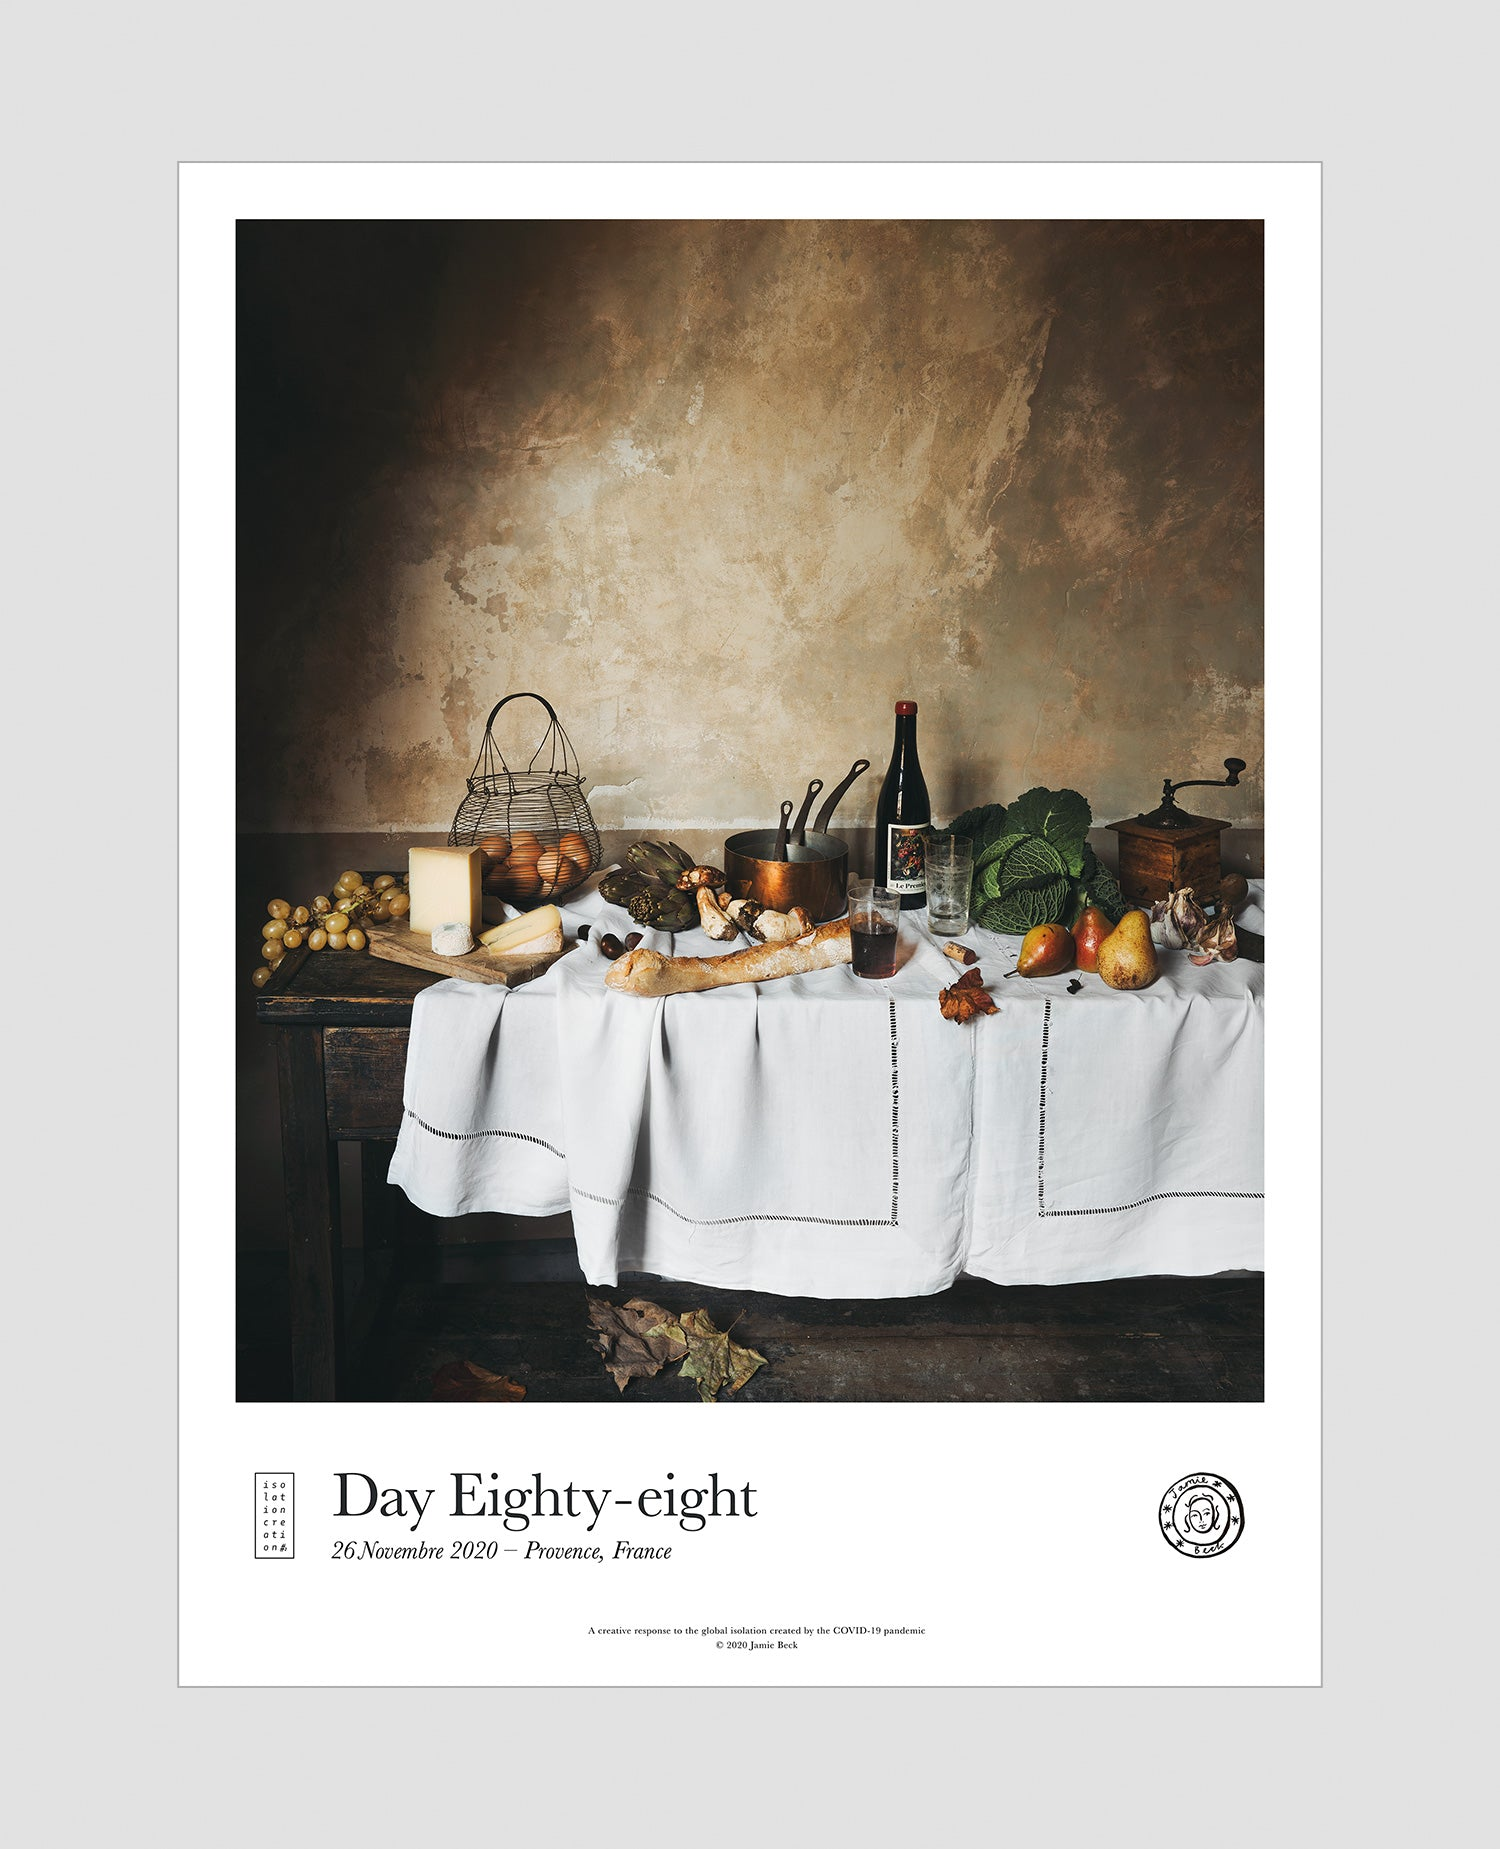 Day Eighty-eight Poster